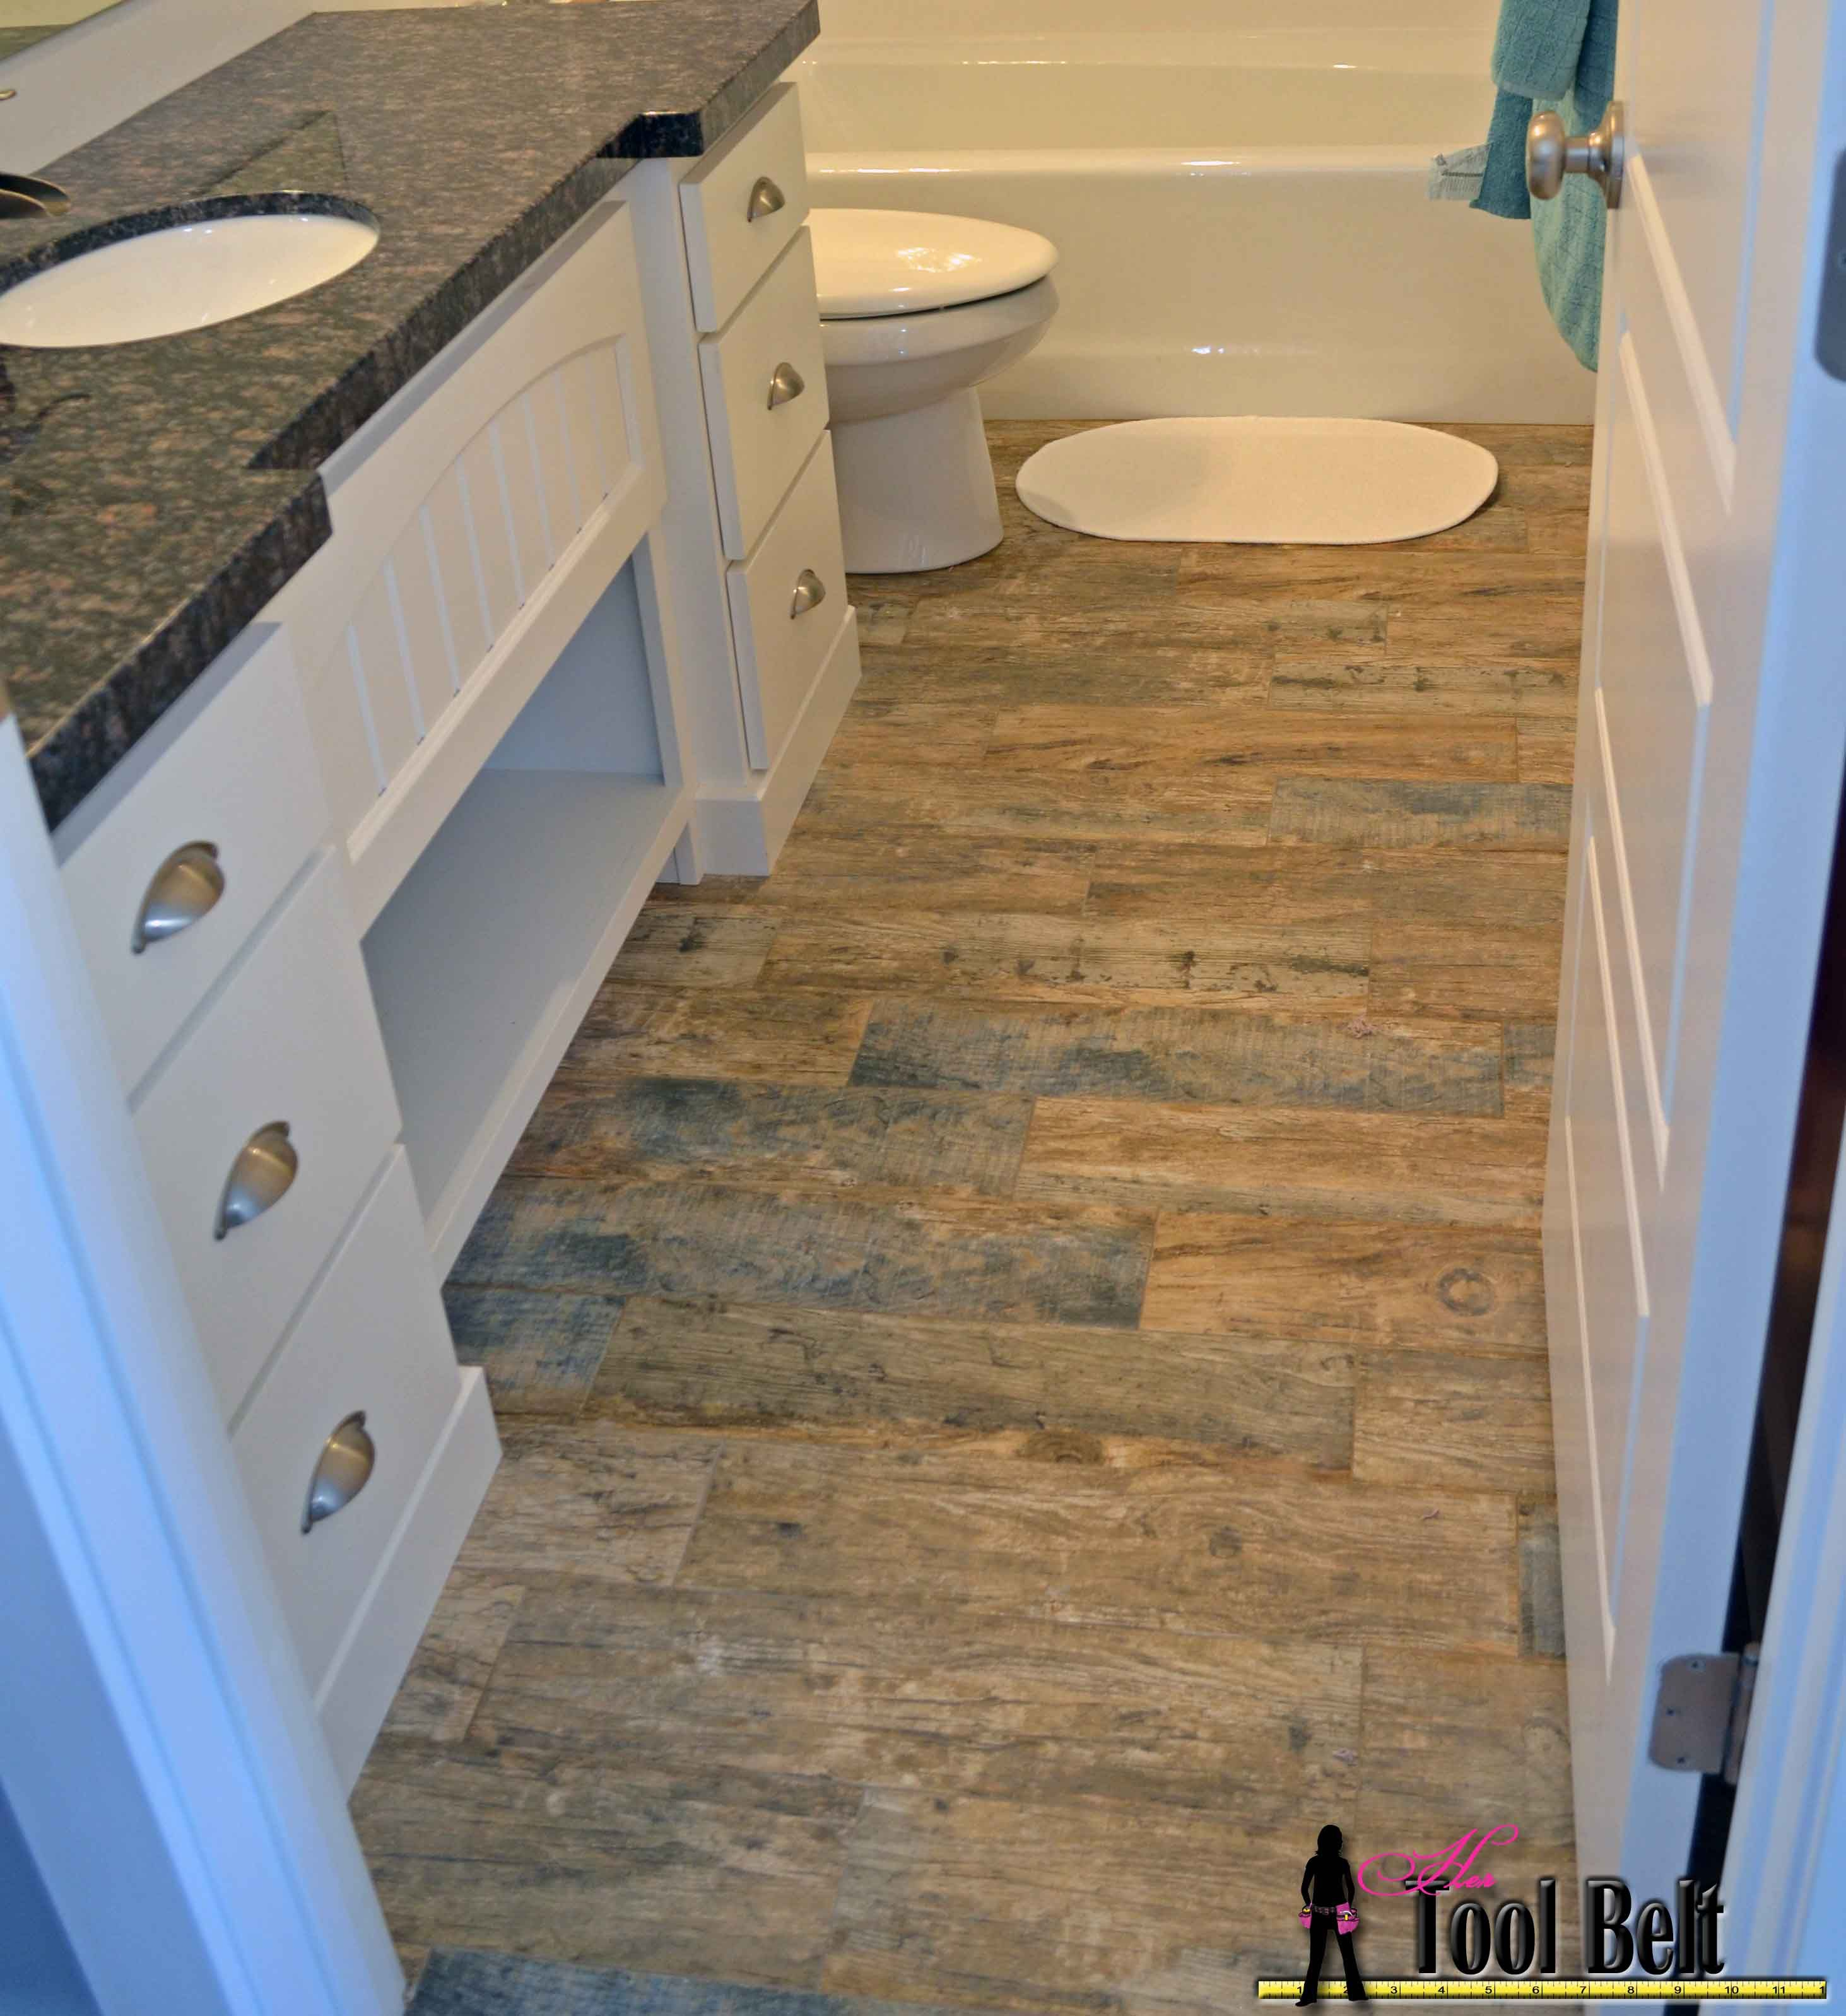 Barnwood tile bathroomg 29263195 pixels a bathrooms step by step tutorial showing how to install faux barn wood tiles this tile looks so good in person and i love the tight grout lines less cleaning dailygadgetfo Choice Image